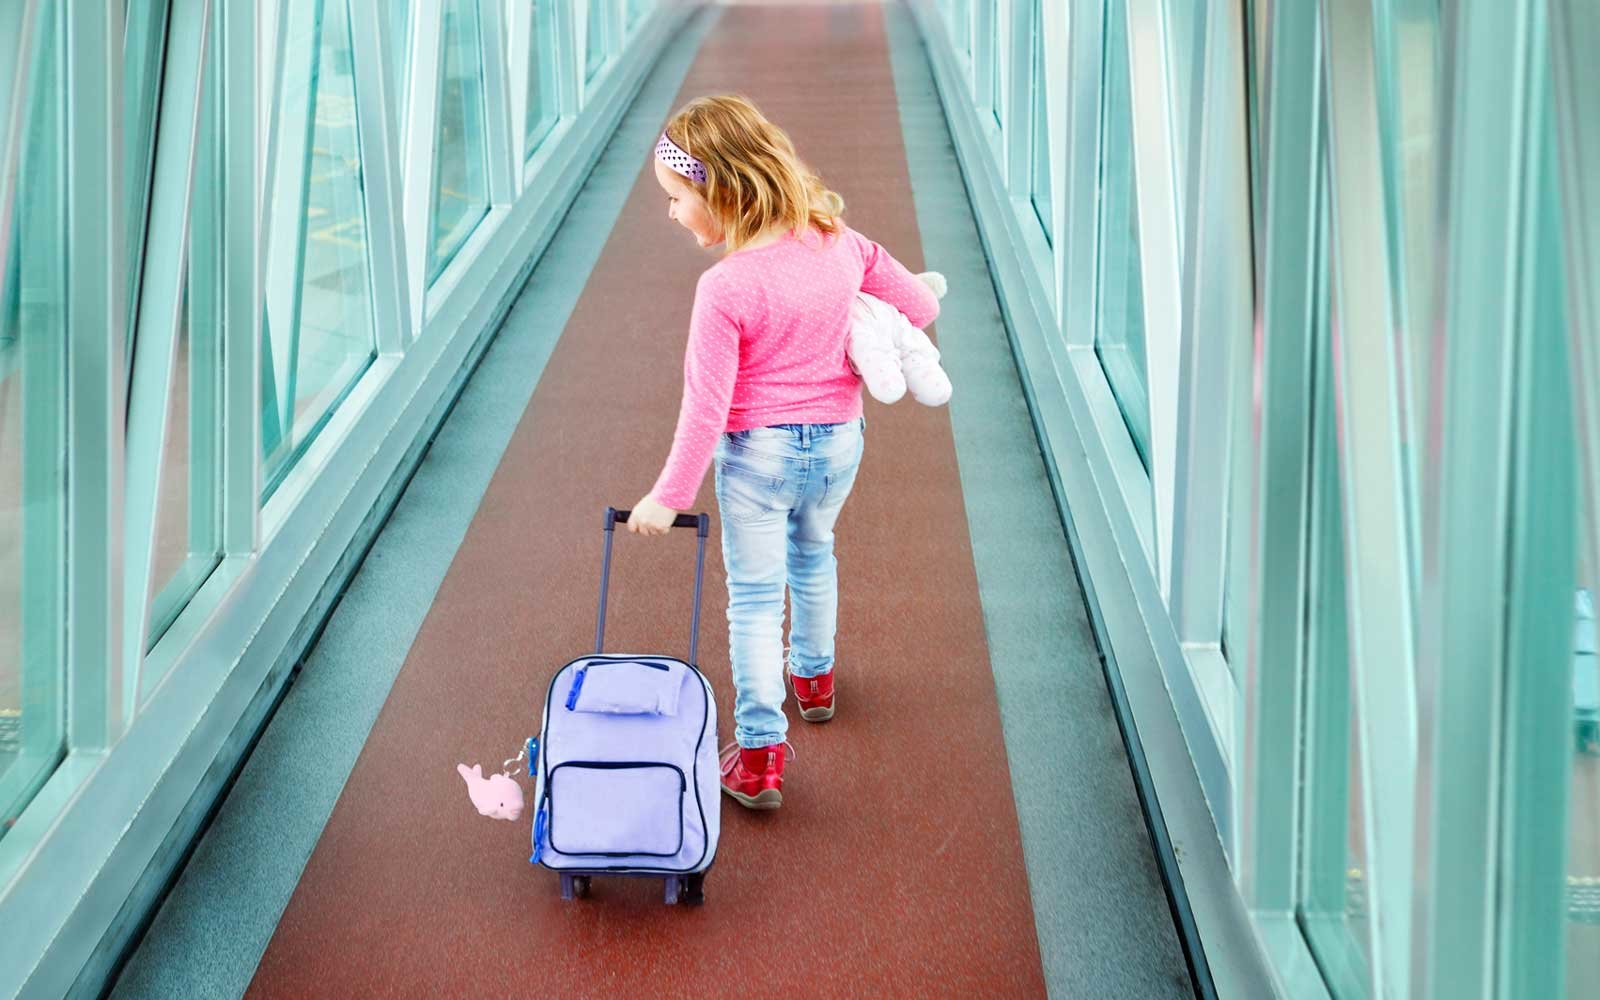 Child Walking With Suitcase in an Airport